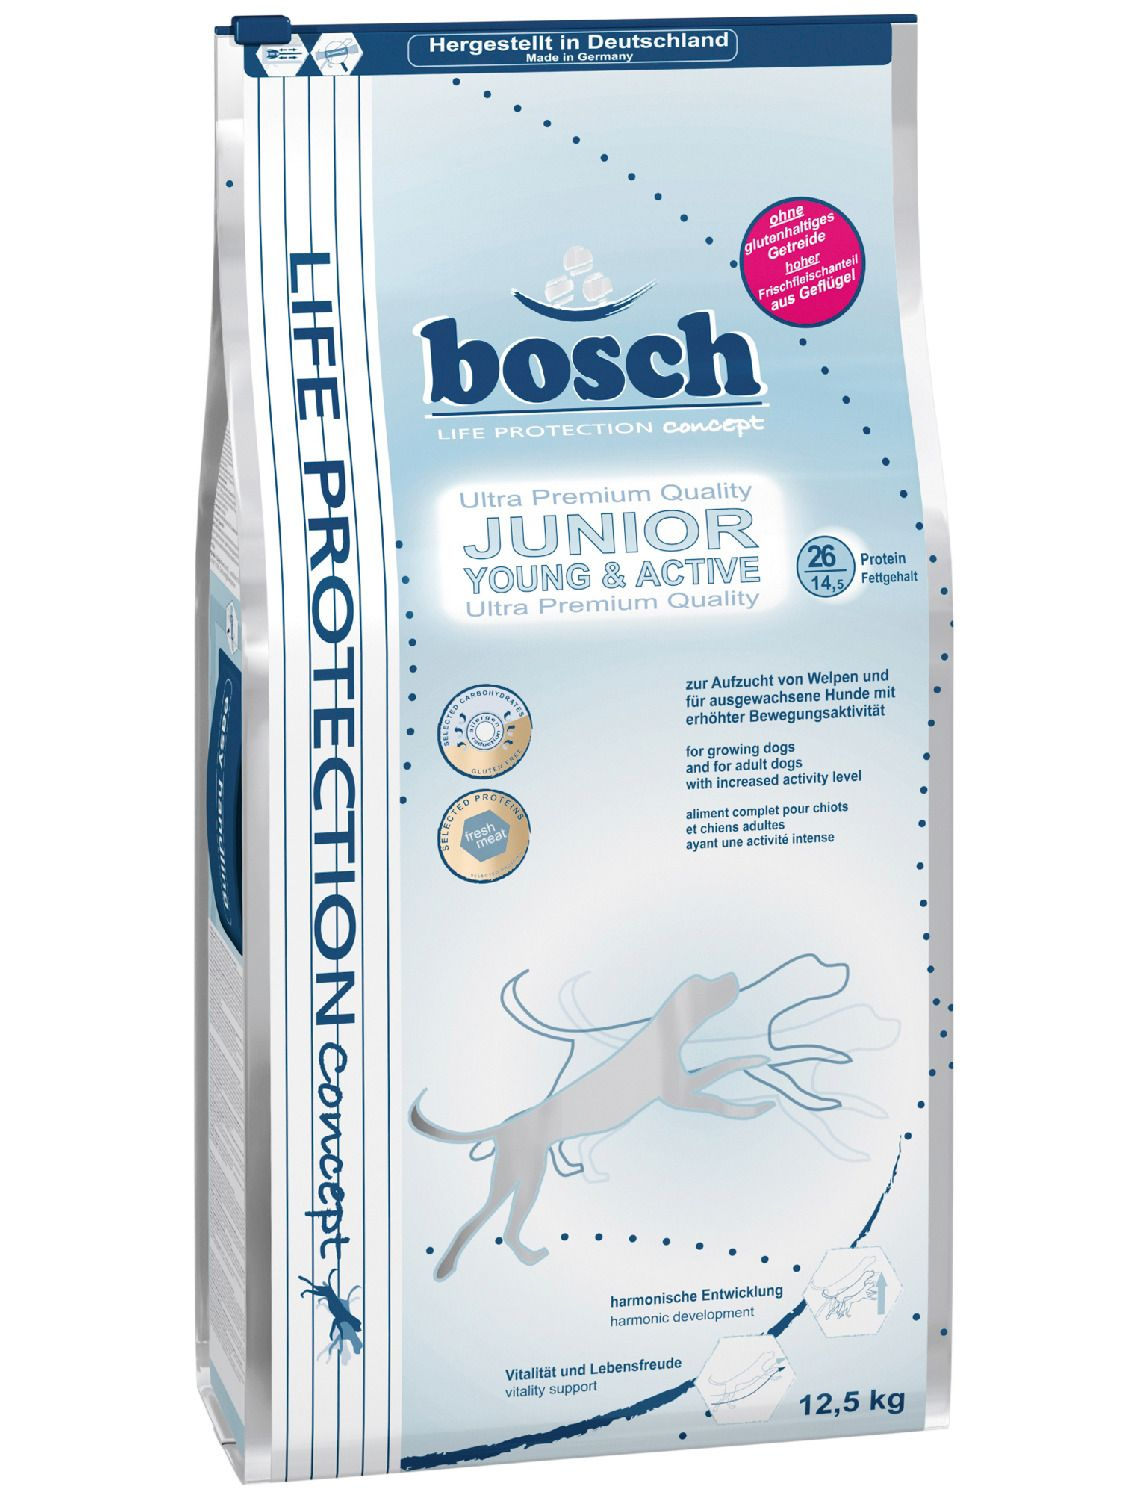 BOSCH PETFOOD Bosch Petfood Hundetrockenfutter »Junior Young & Active«, 3,75 kg oder 12,5 kg